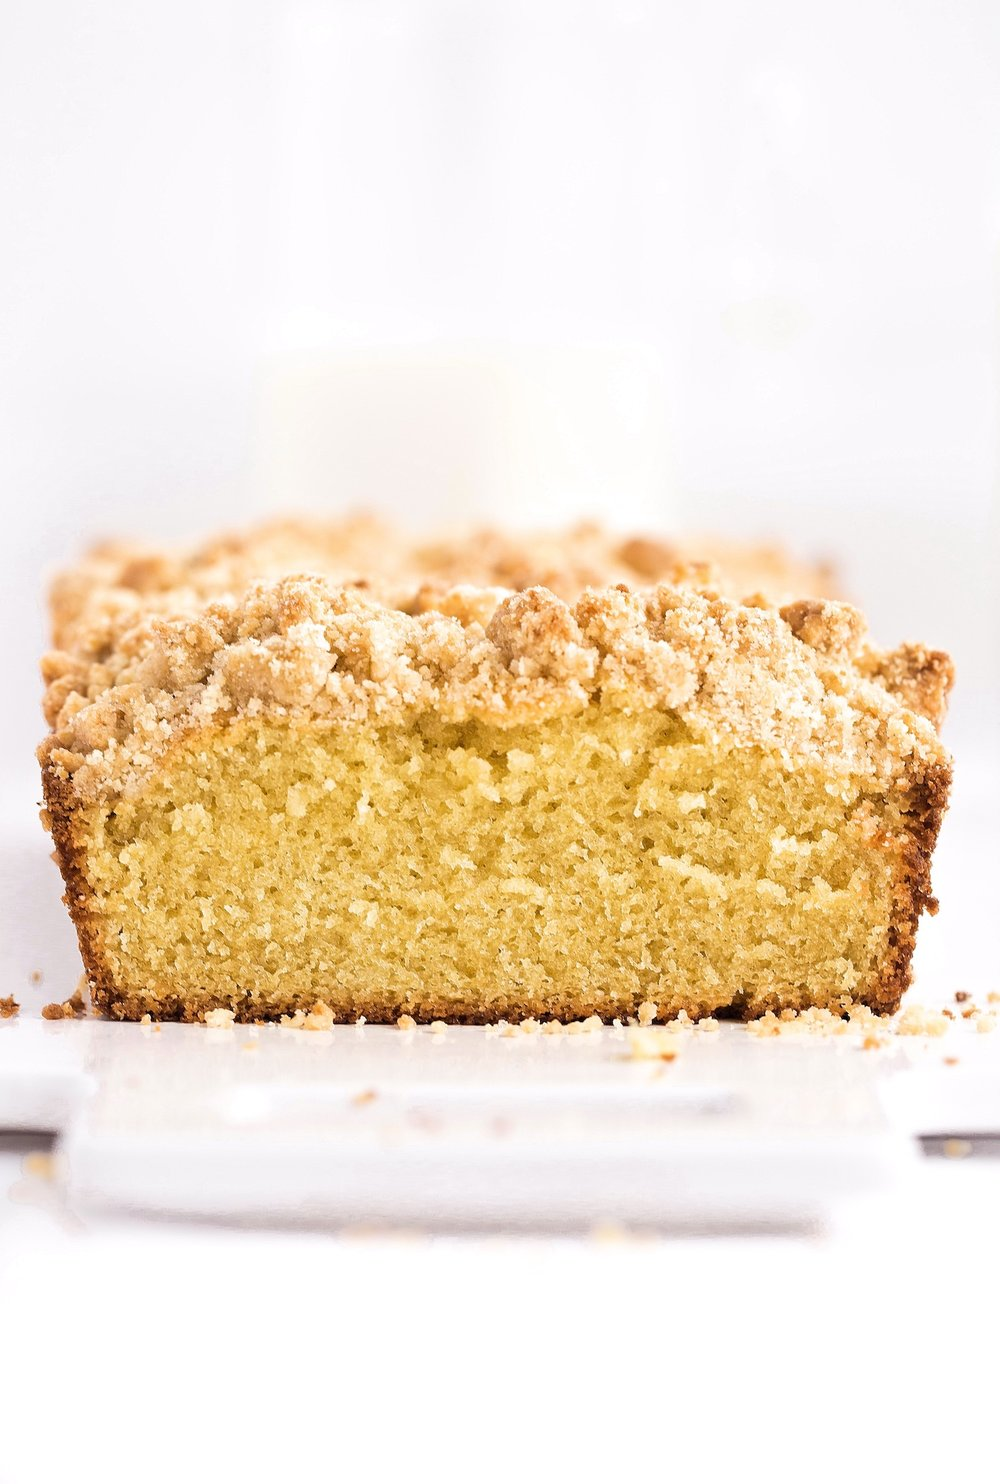 Fluffy Butter Streusel Loaf Cake: this loaf cake is rich and flavorful like a butter cake yet fluffy like a yellow cake. Topped generously with a tasty streusel! | TrufflesandTrends.com